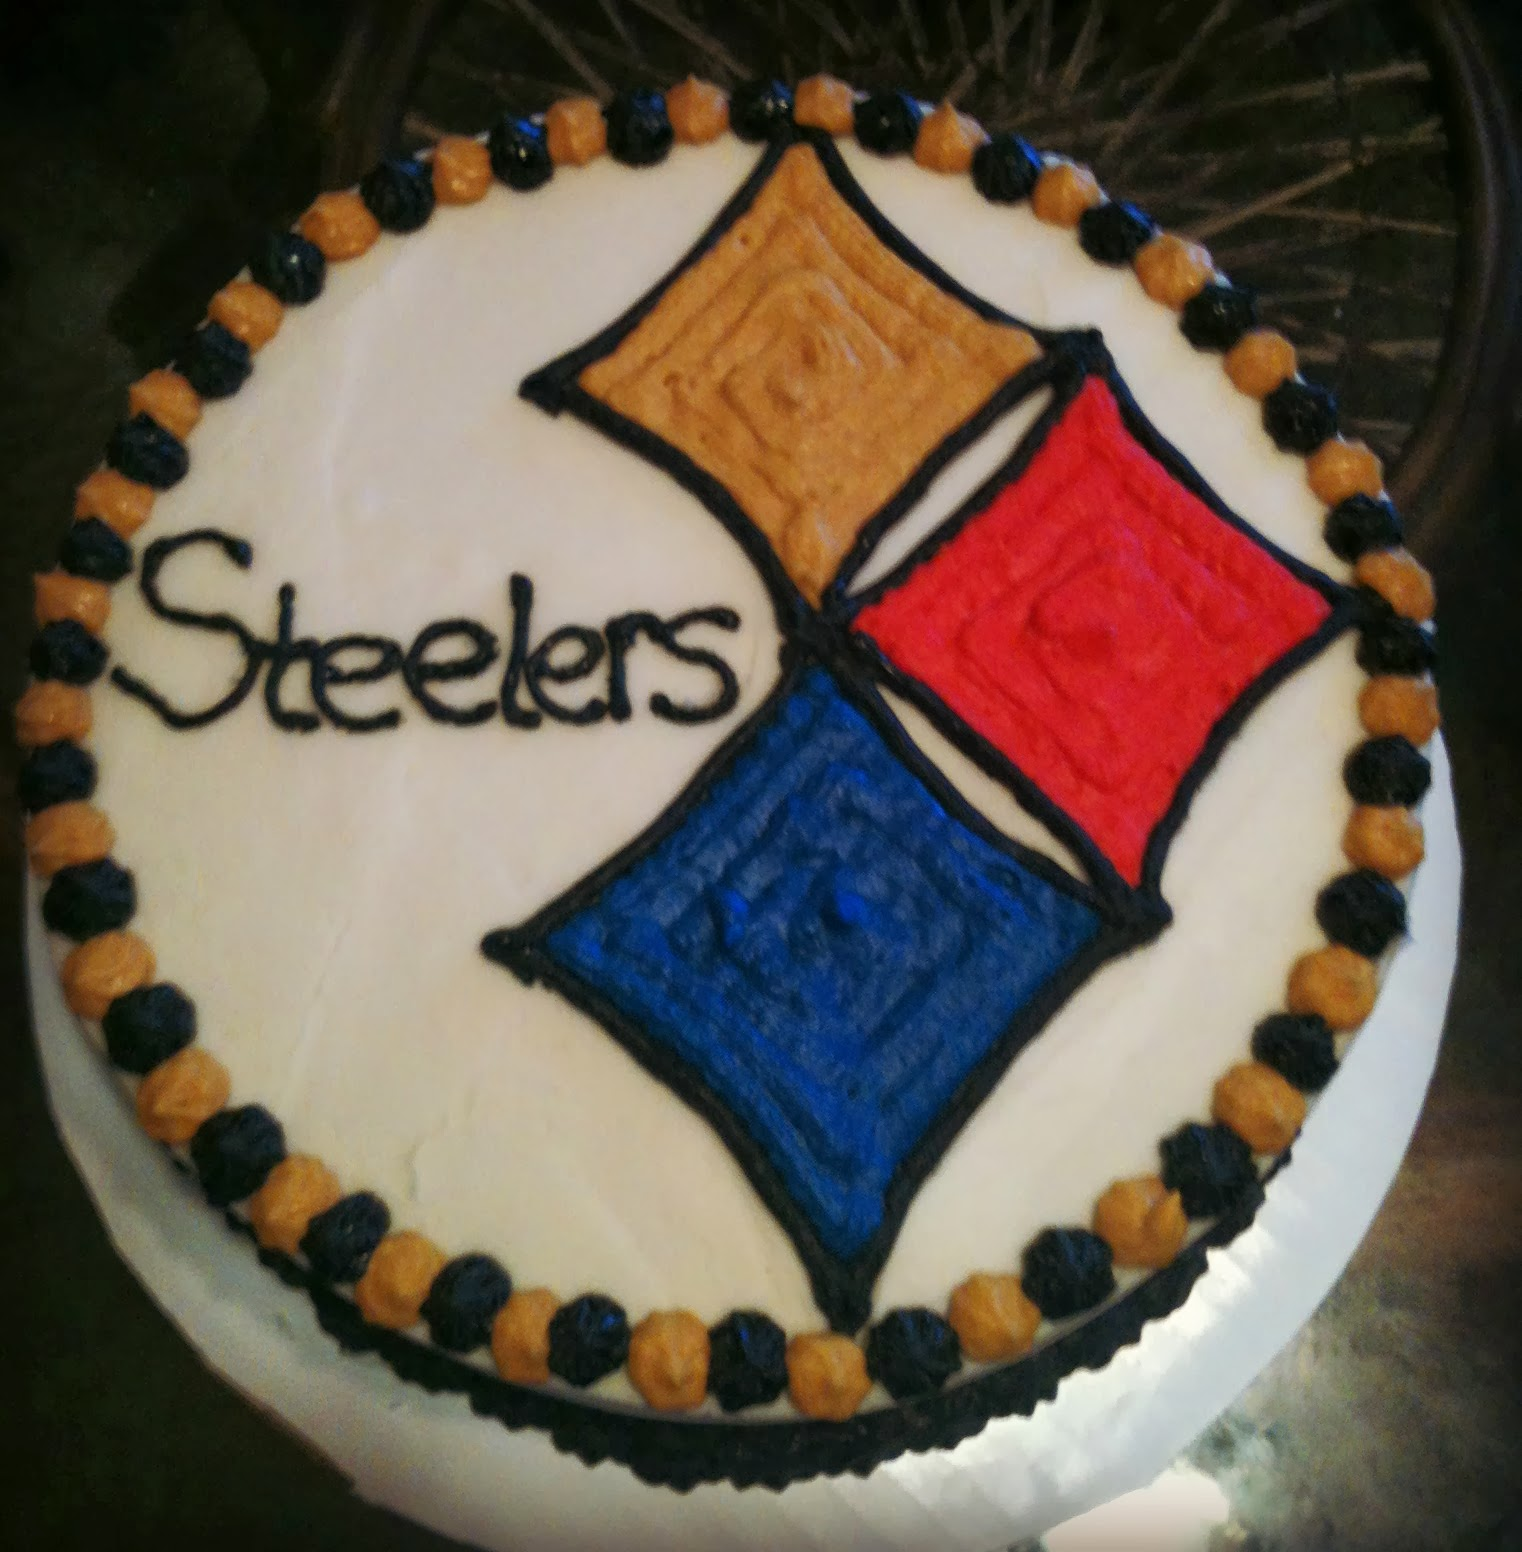 Mandy S Cakes Steelers Cake